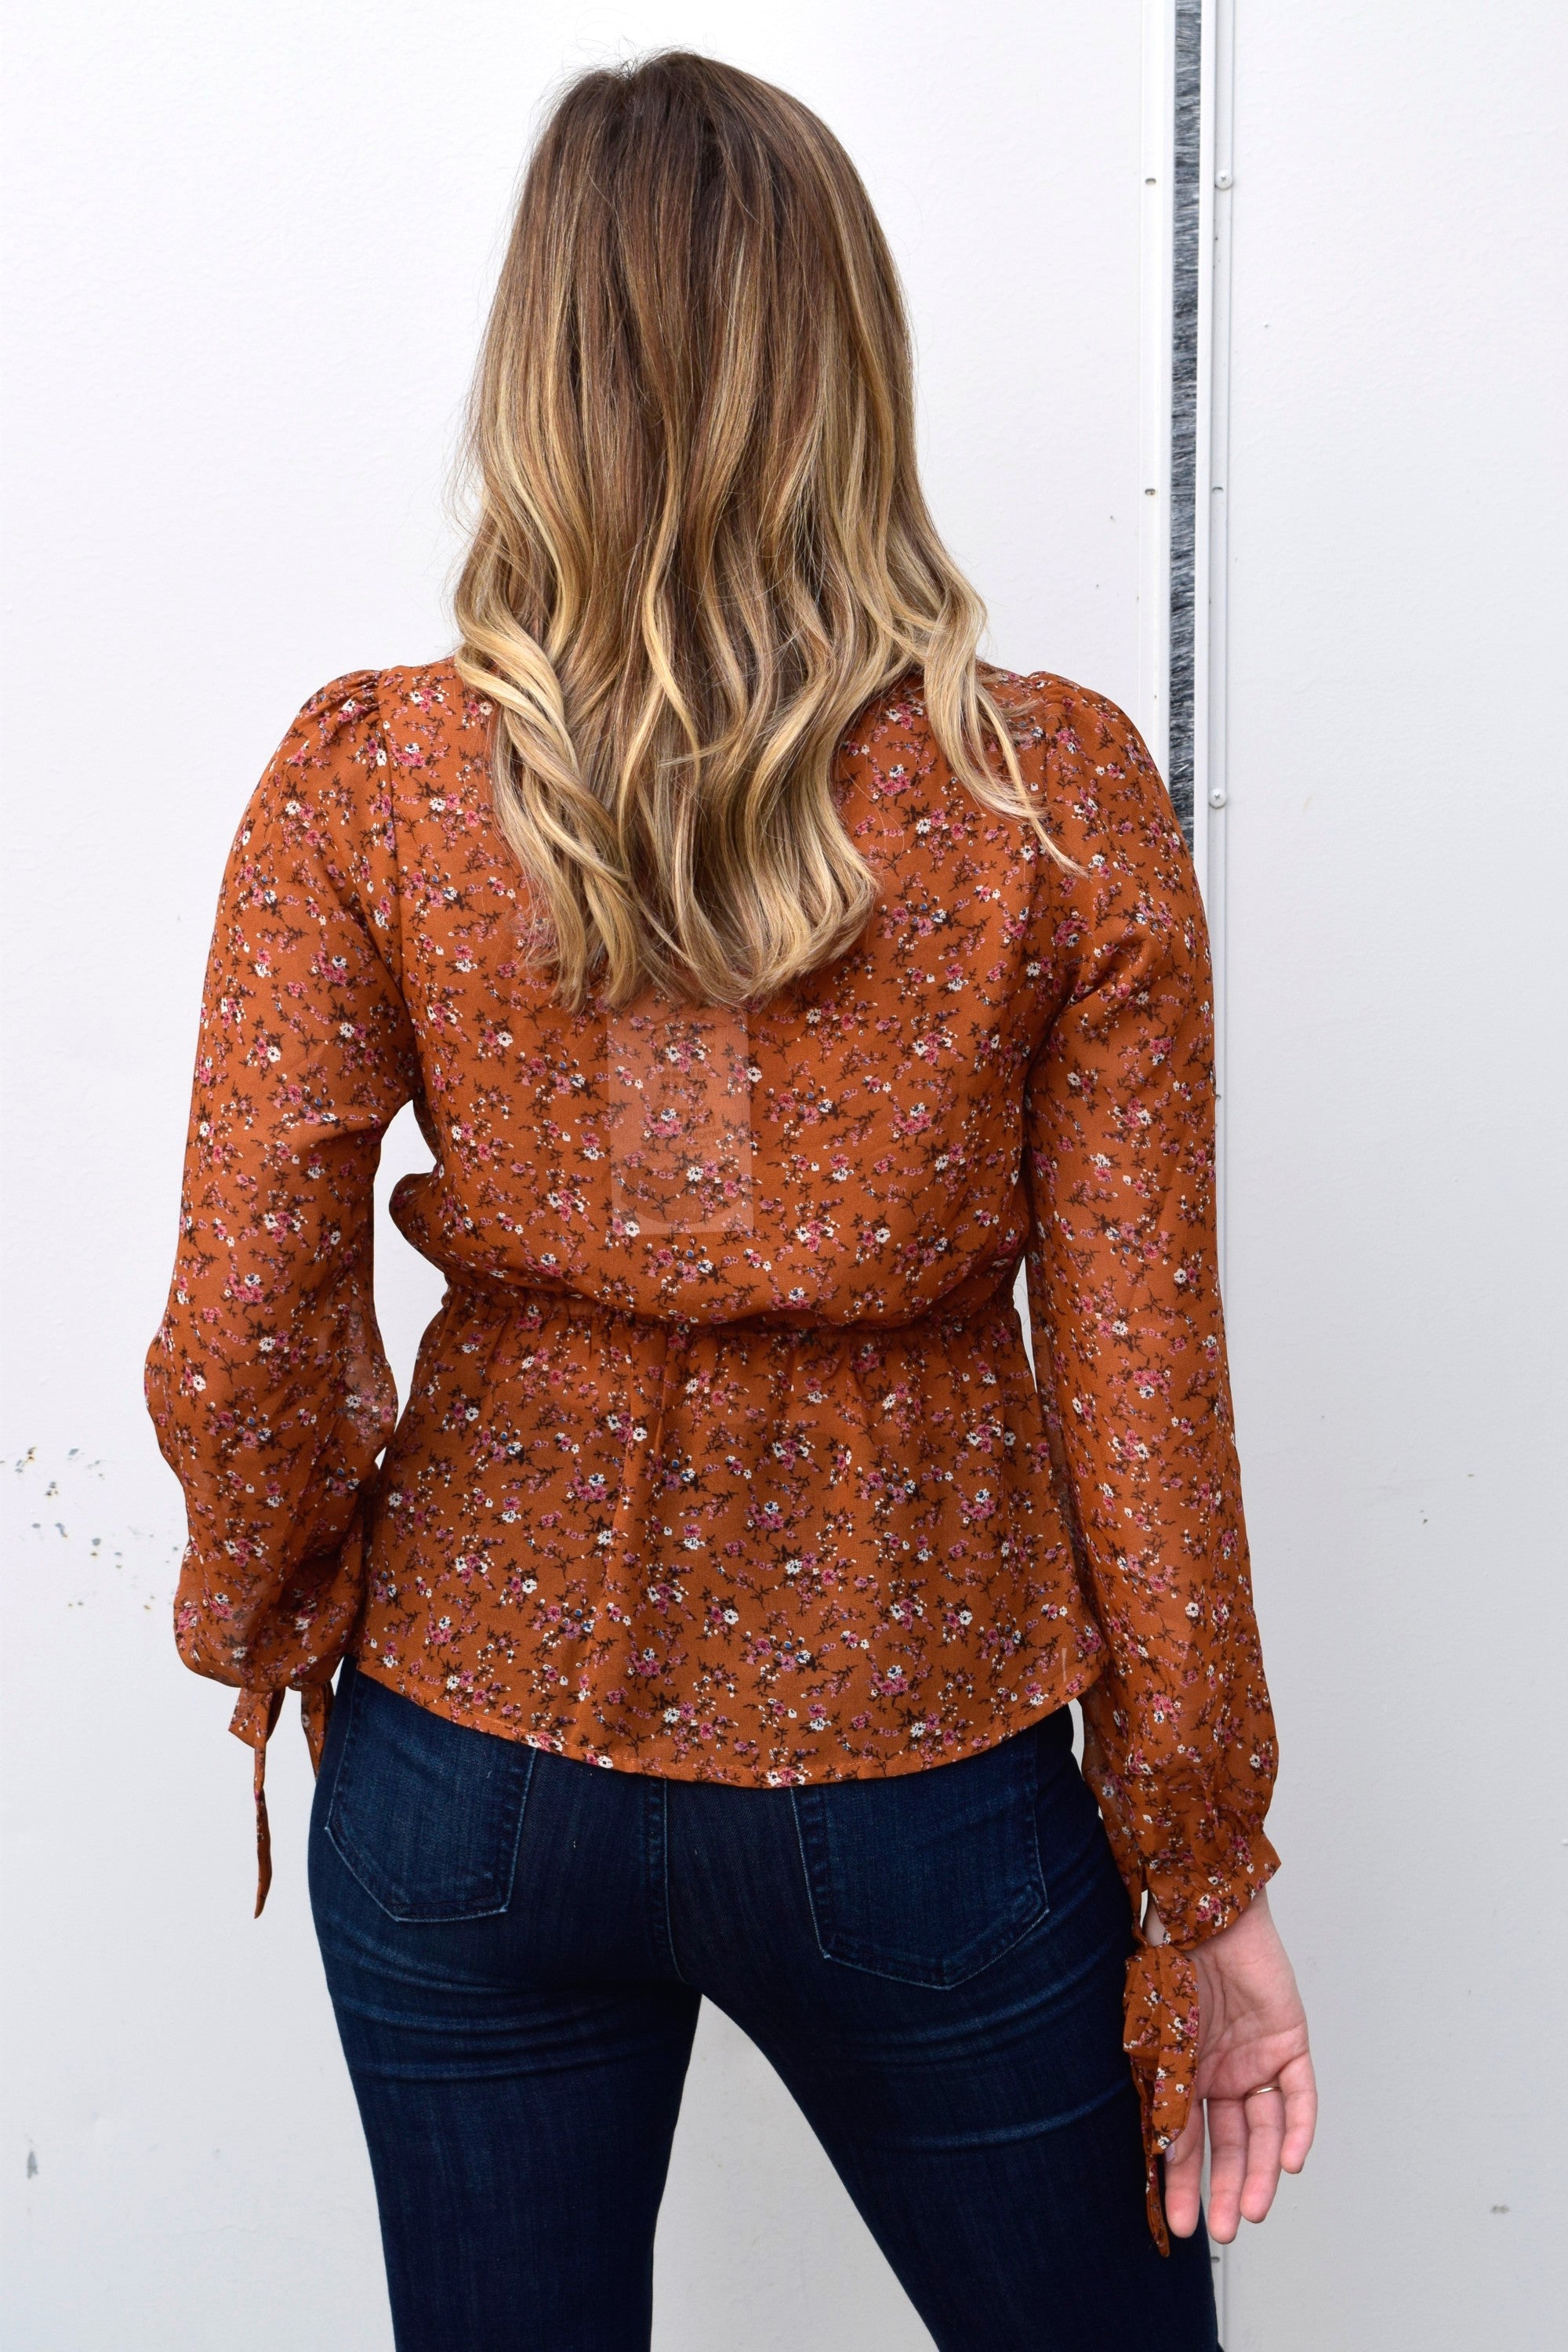 GOT TO GET GROWING RUST FLORAL TOP